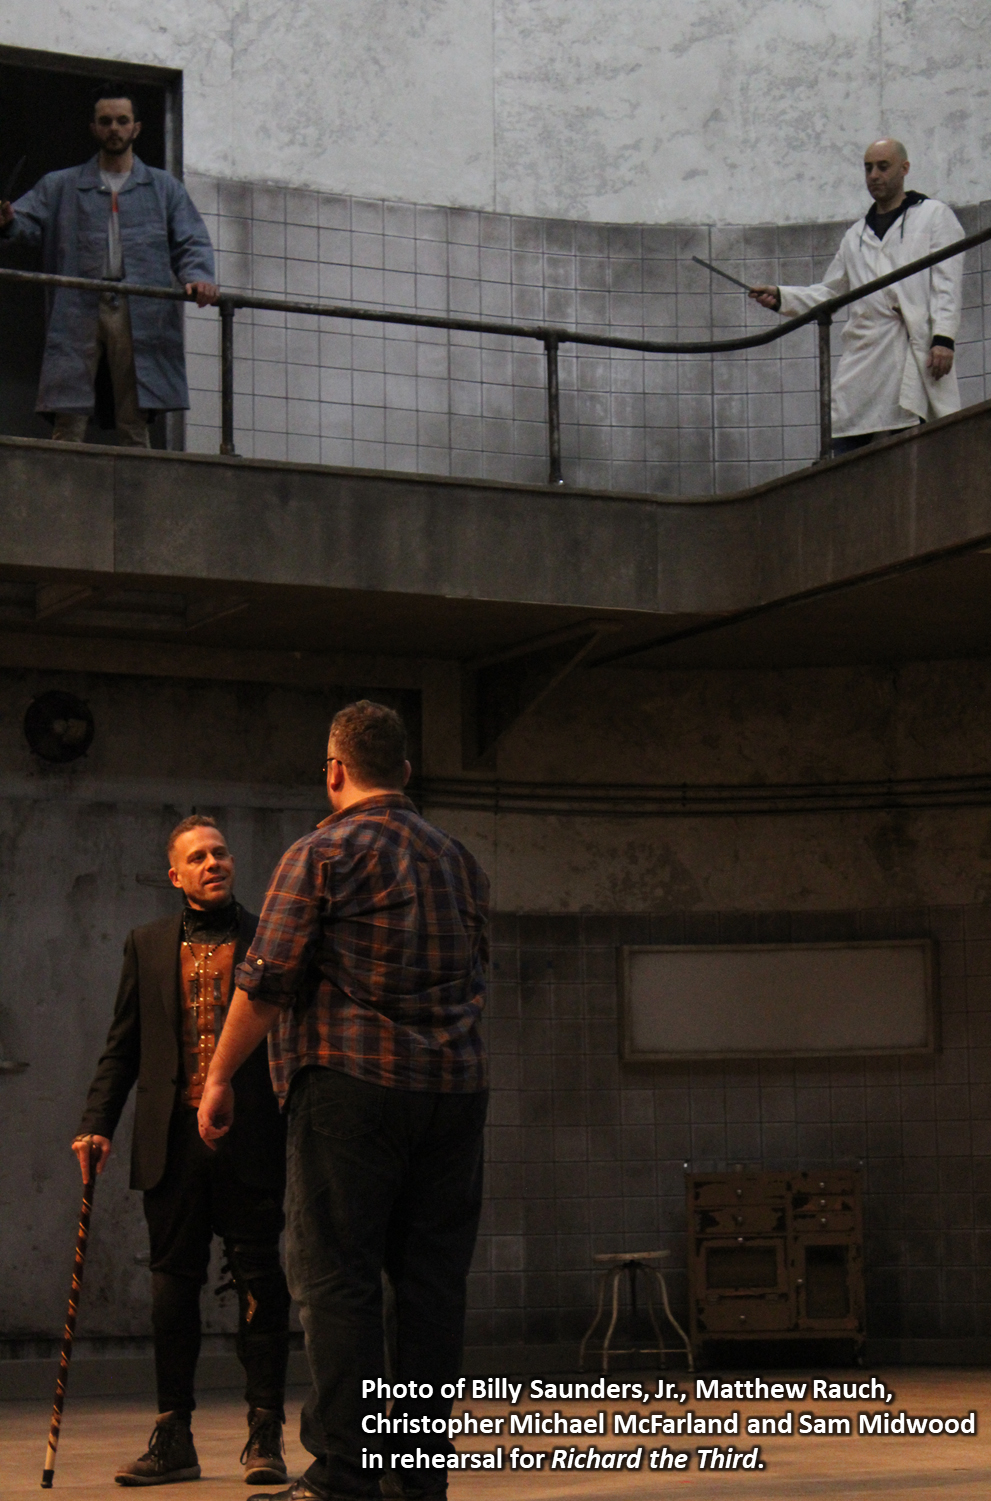 Photo of Billy Saunders, Jr., Matthew Rauch, Christopher Michael McFarland and Sam Midwood in rehearsal for Richard the Third.